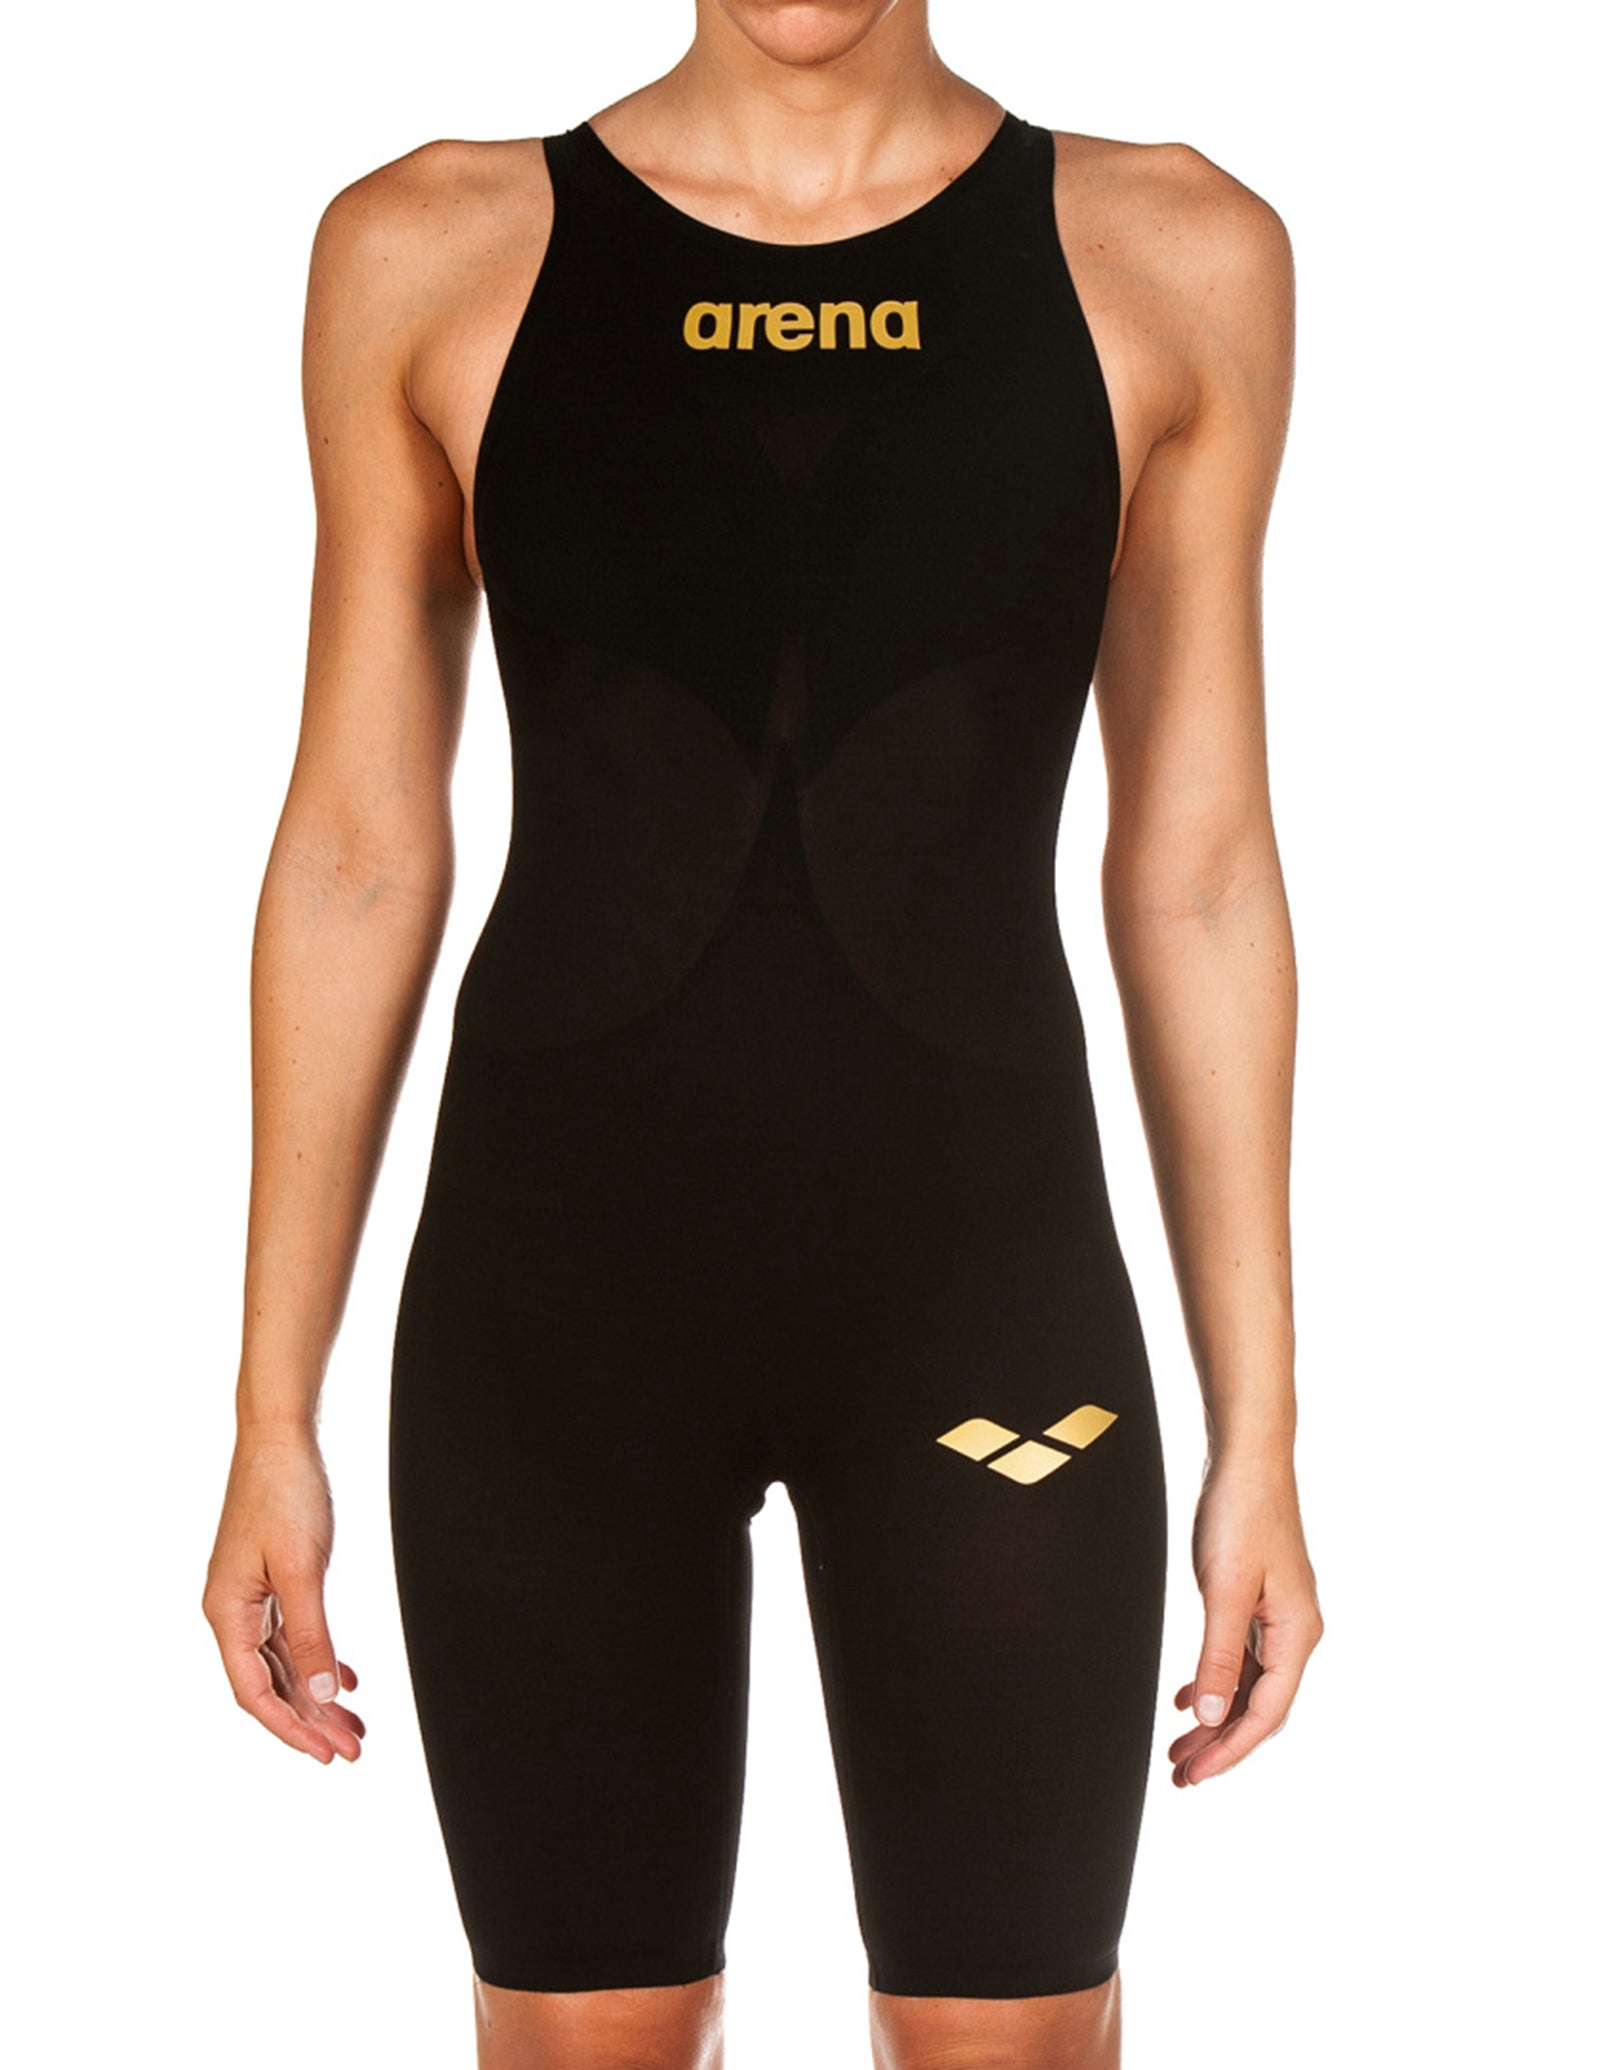 69880fc4ae Arena Powerskin Carbon Air 2 Full Body Short Leg - Black and Gold ...